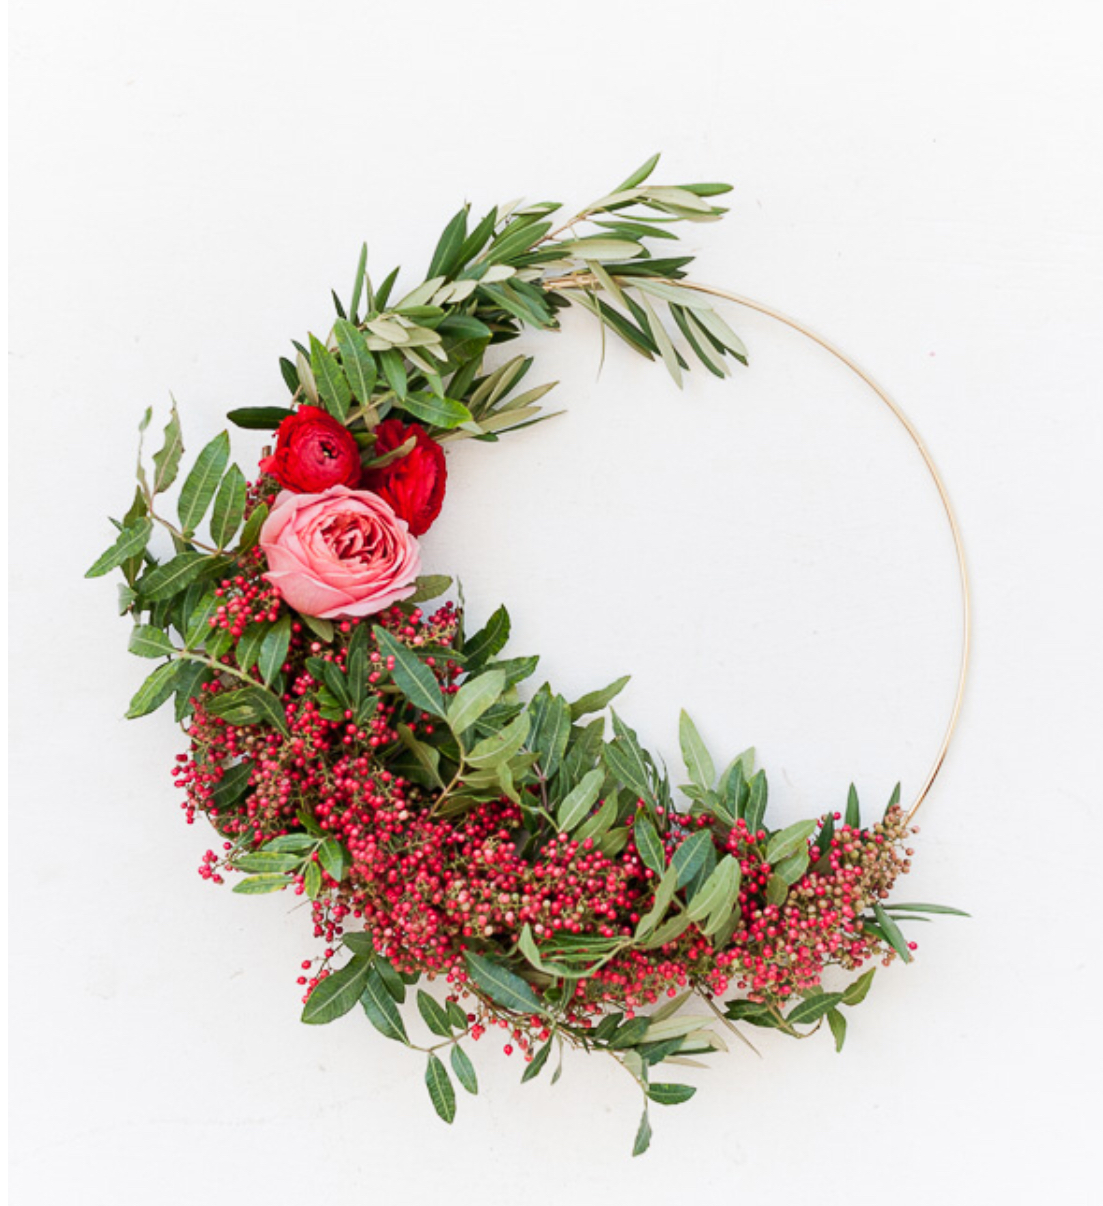 Floral & Greenery Wreaths